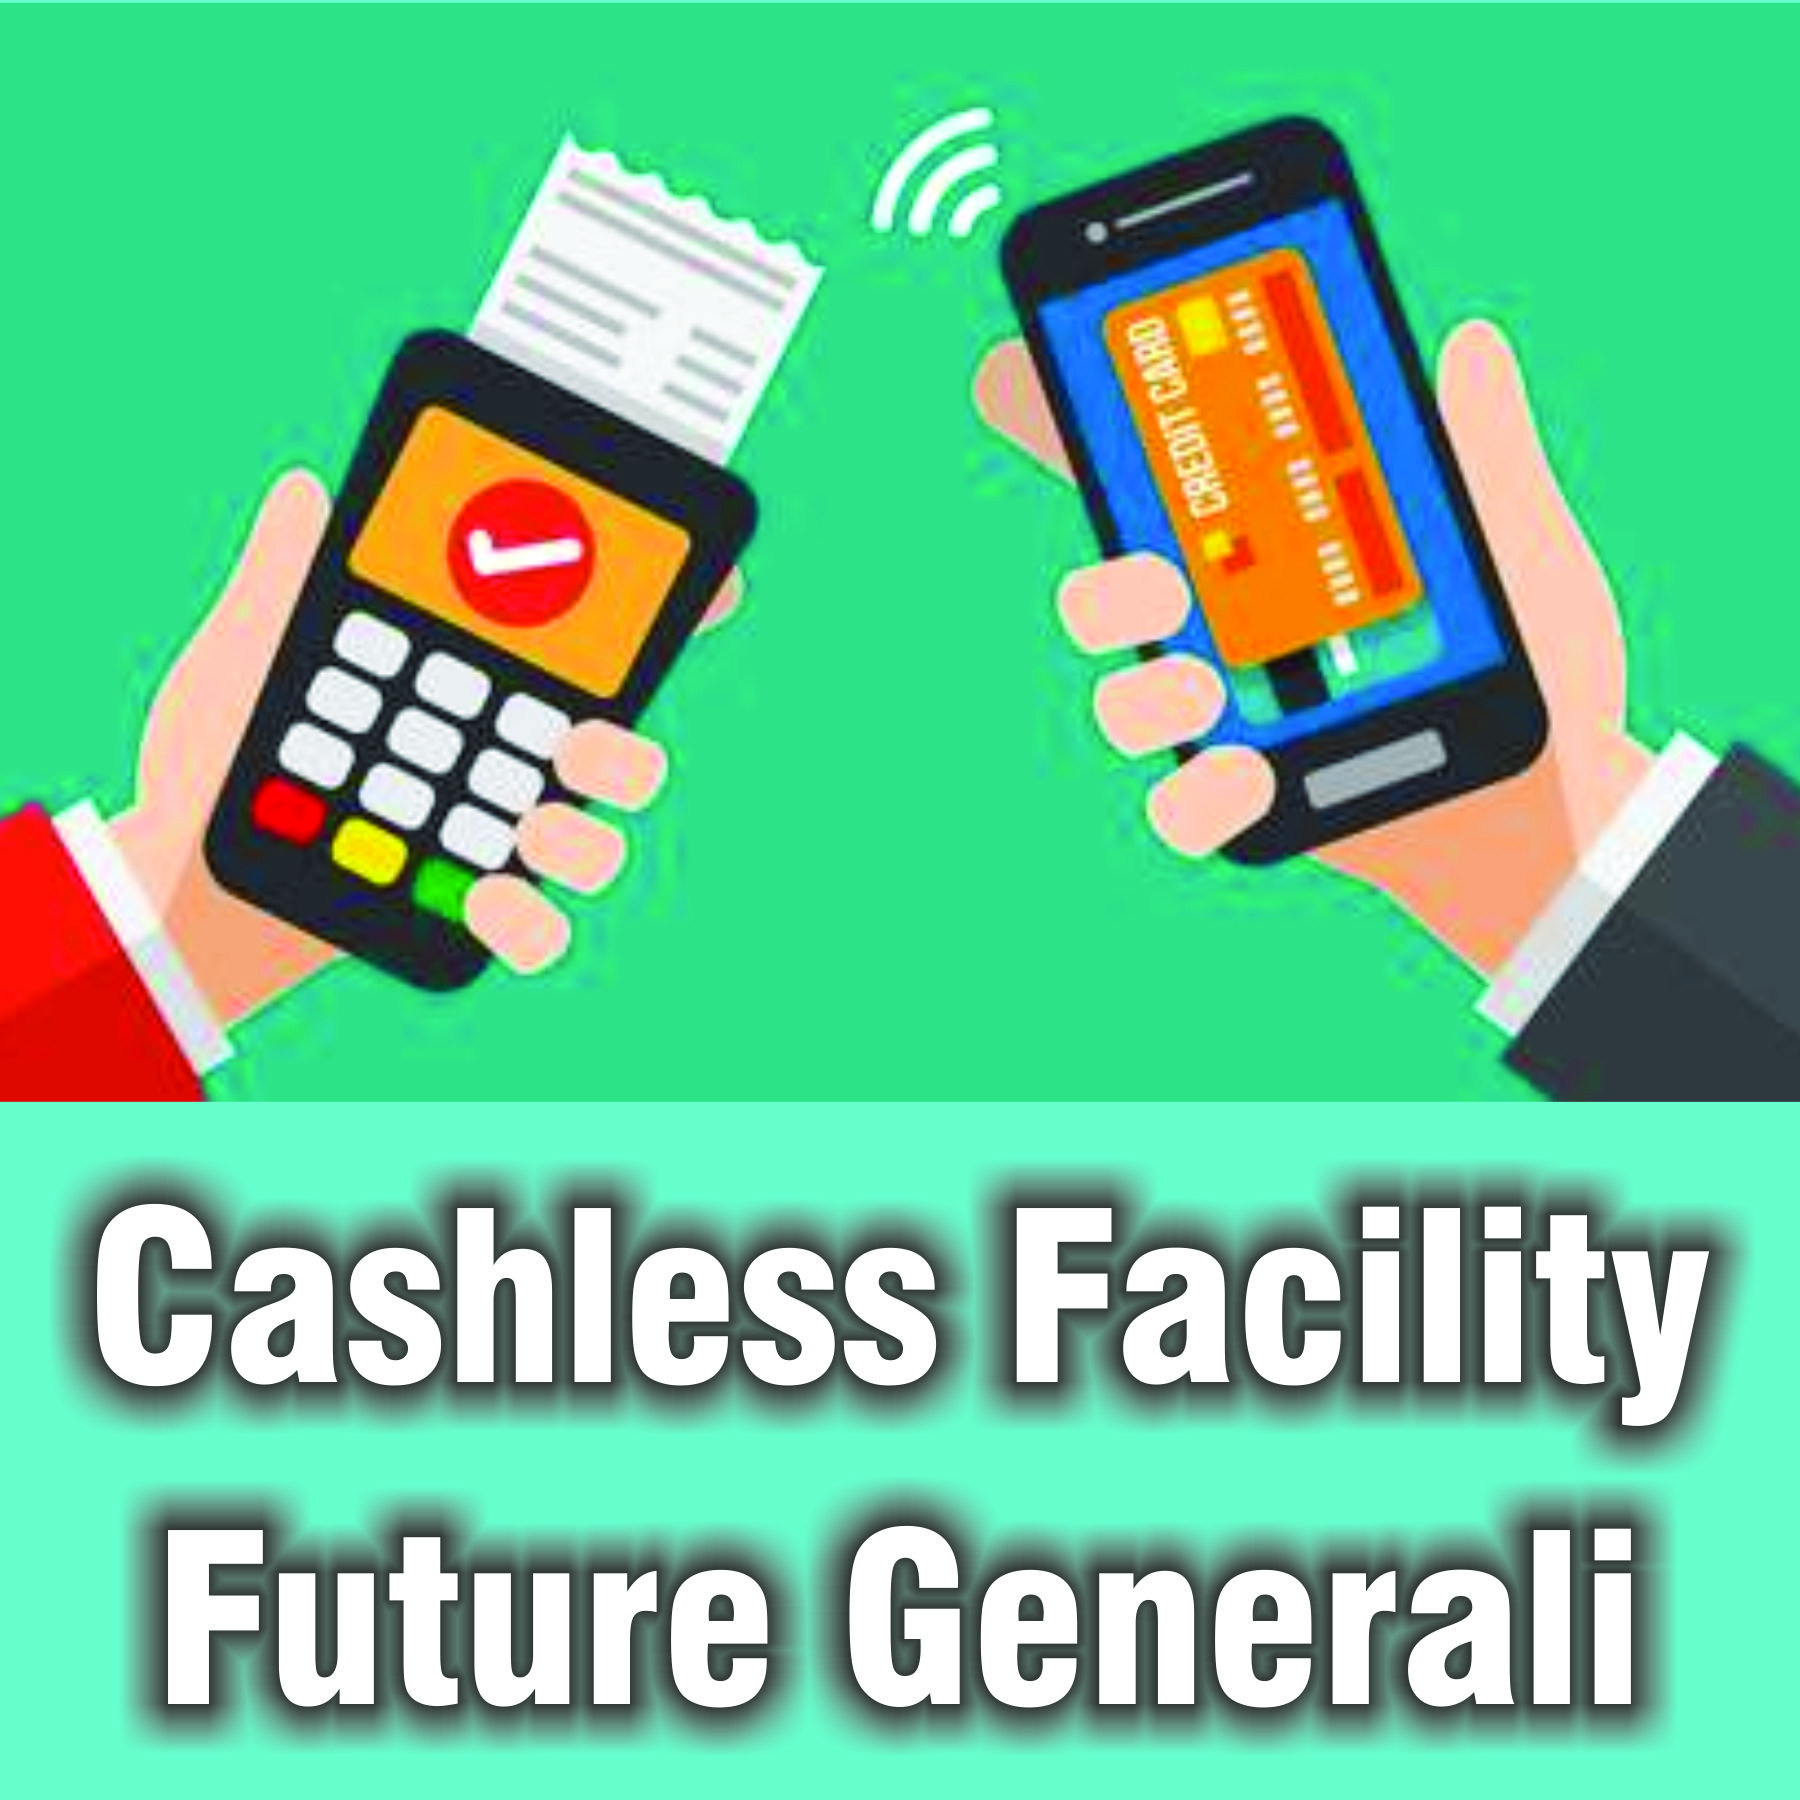 Cashless Facility Future Generali